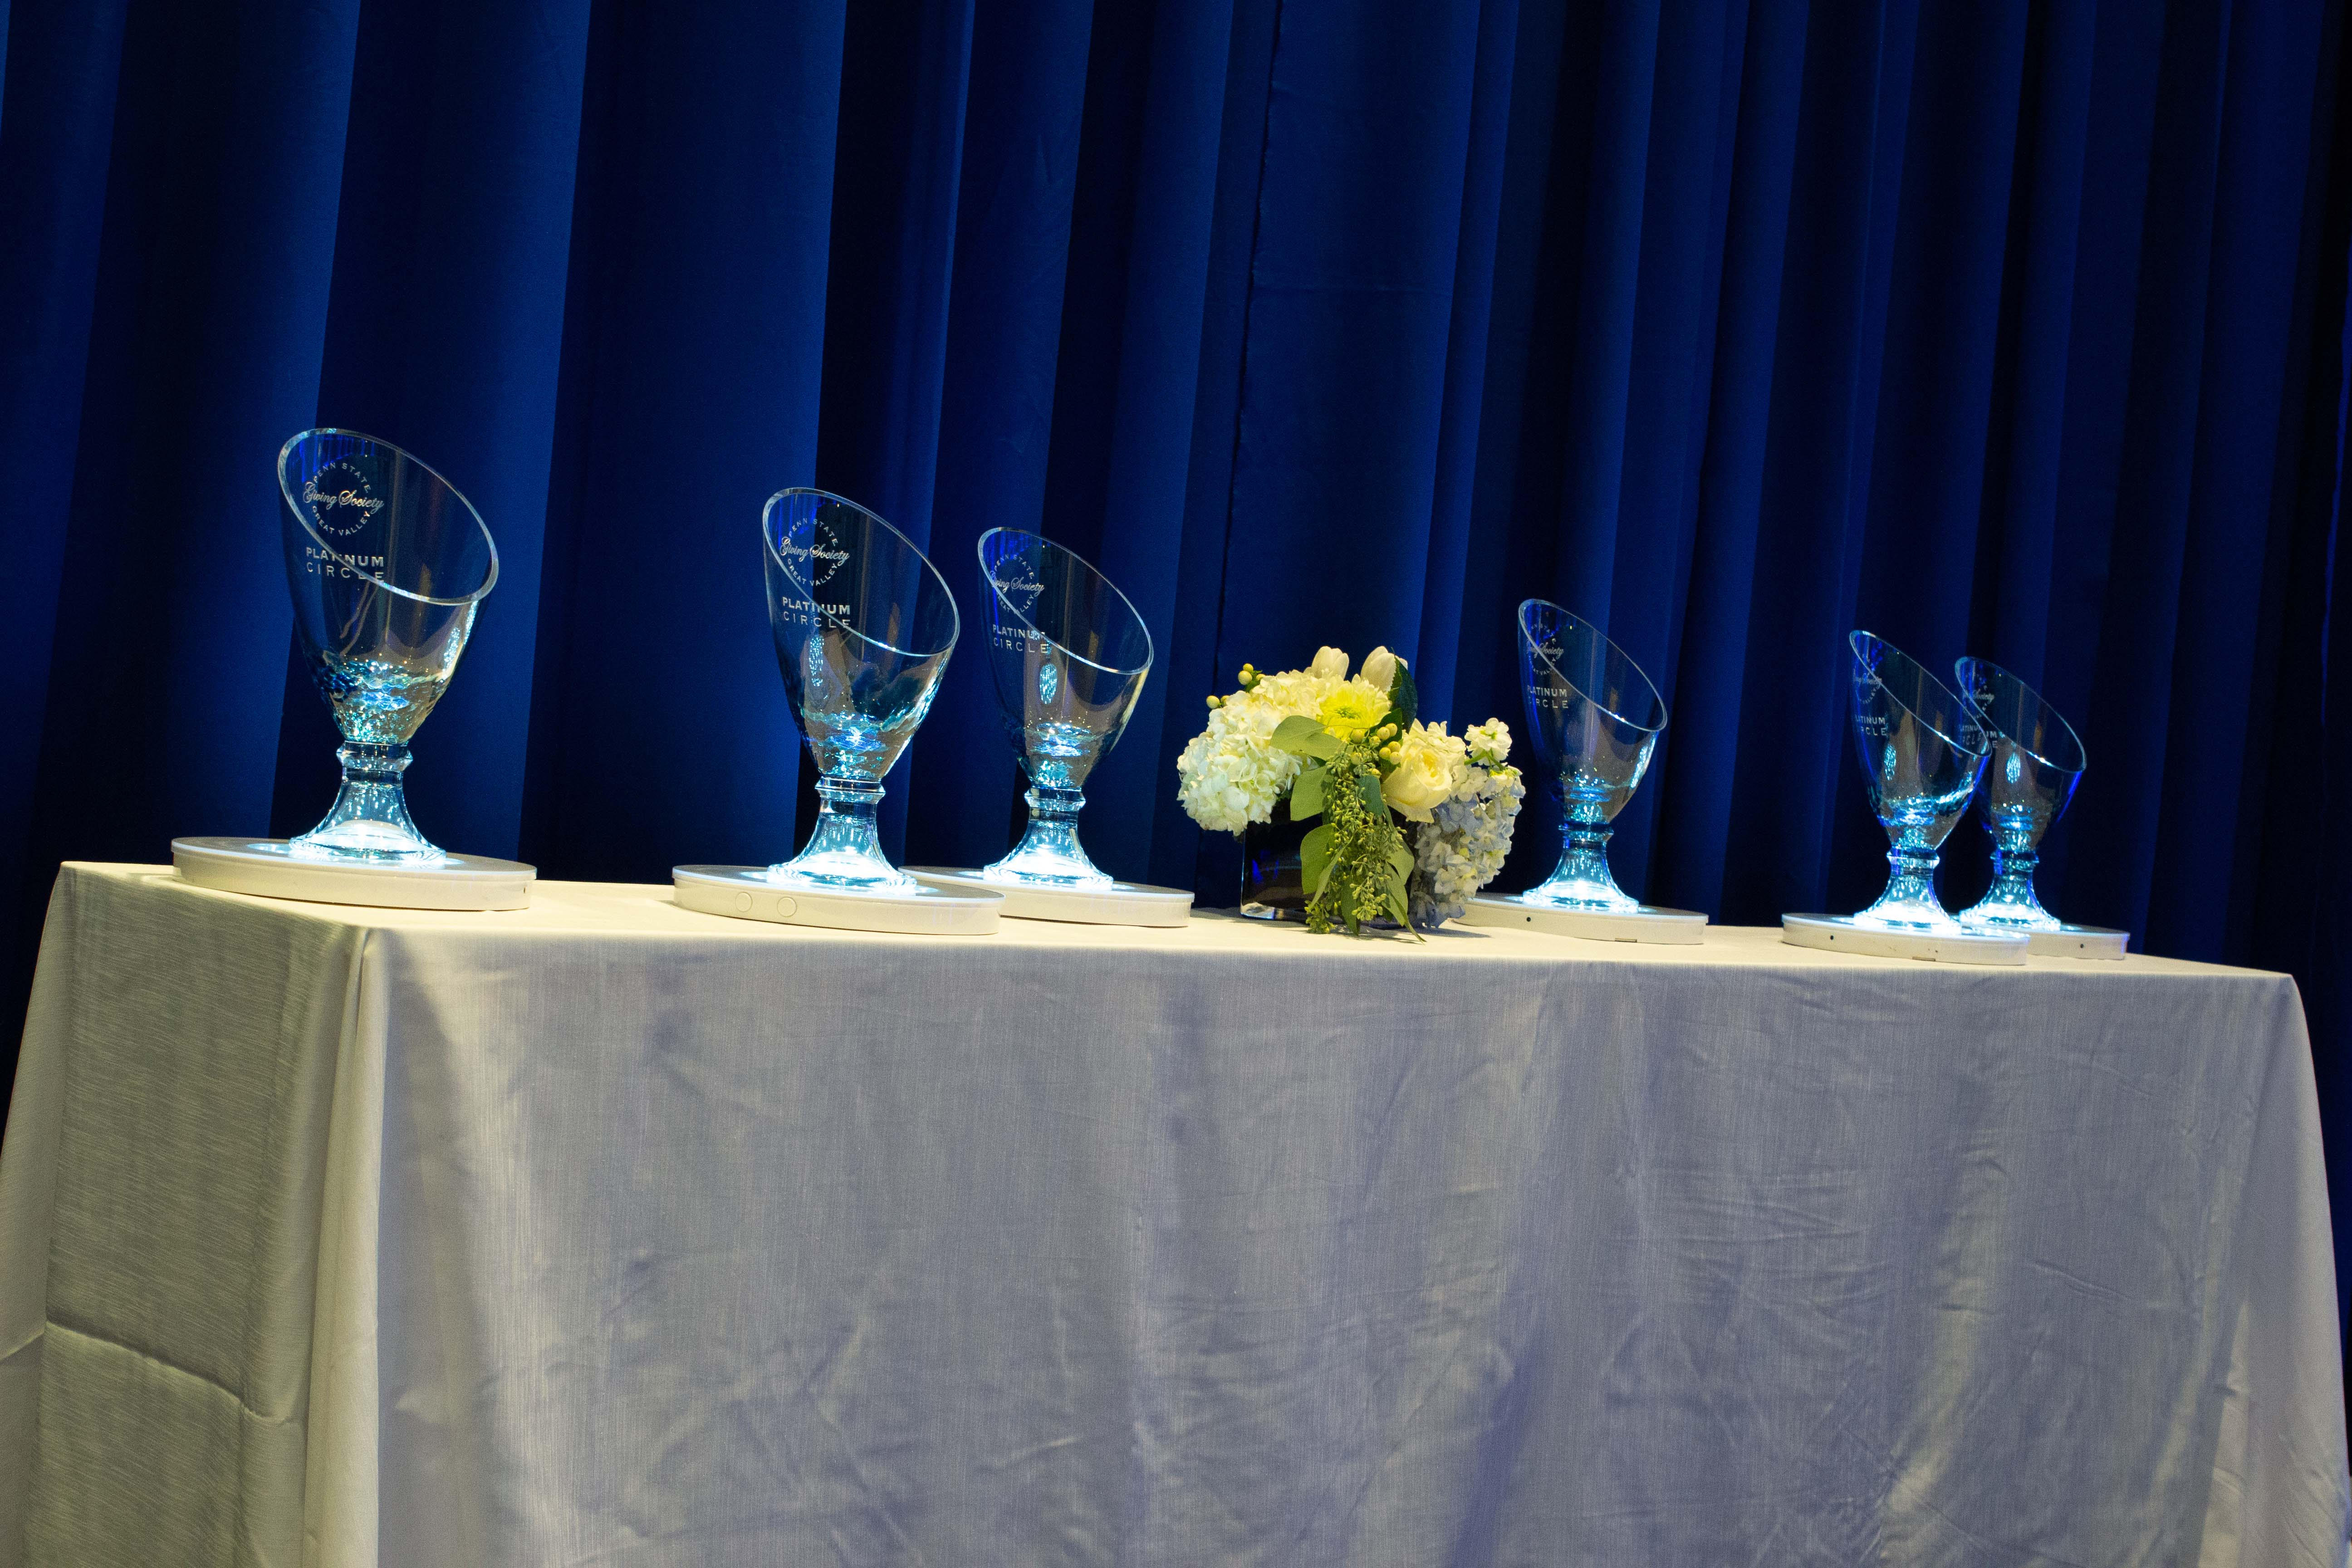 Glass vases etched with the Great Valley Giving Society logo on a table